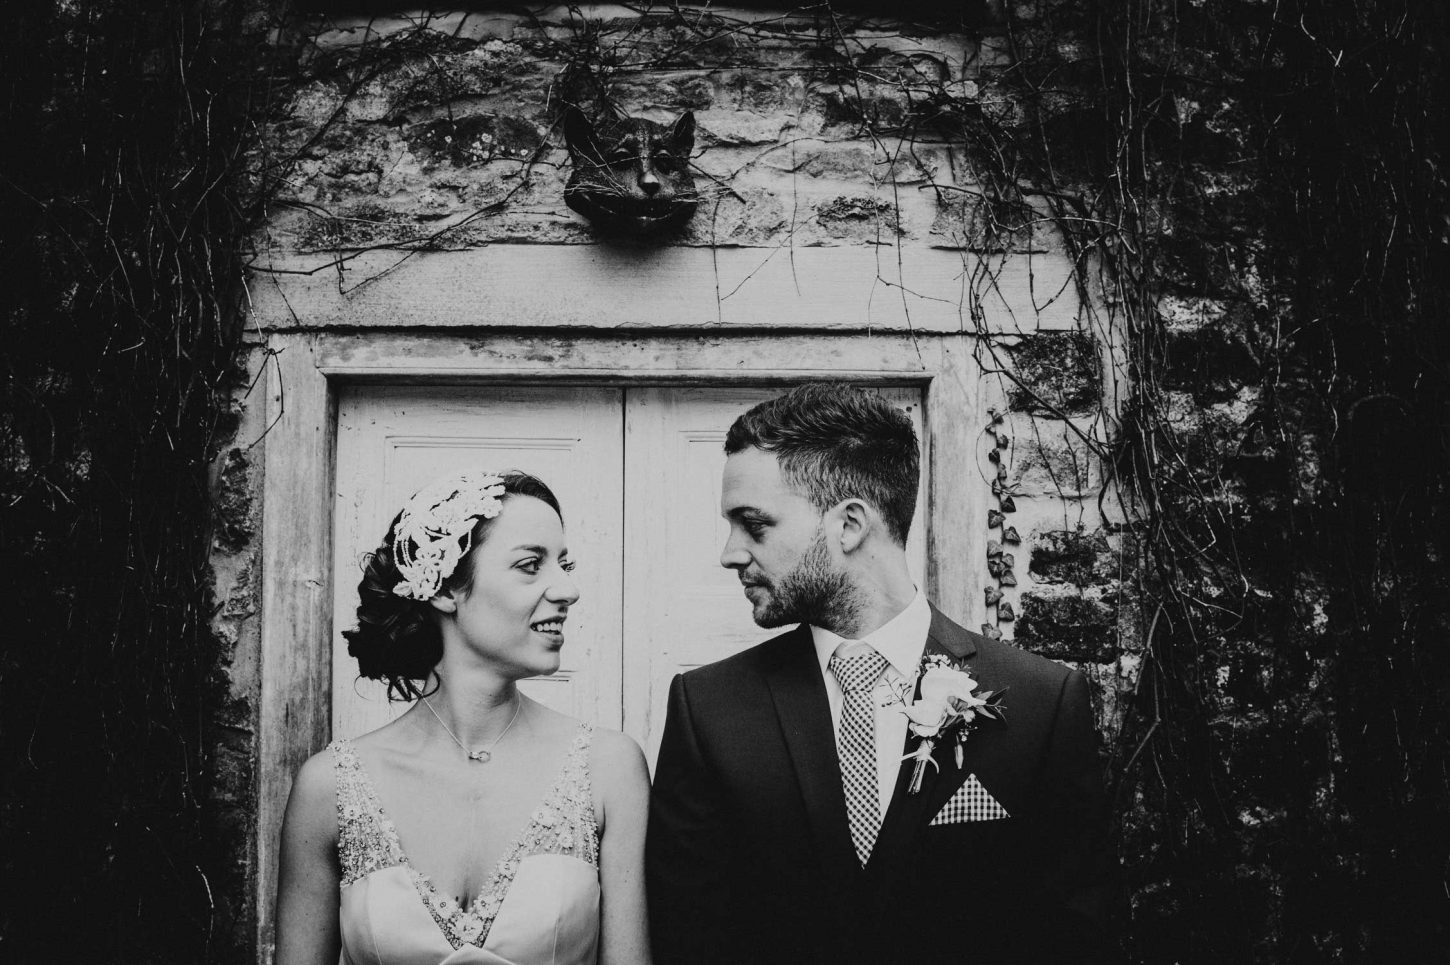 kilver court wedding in somerset, somerset wedding photographer, bride and groom looking at each other